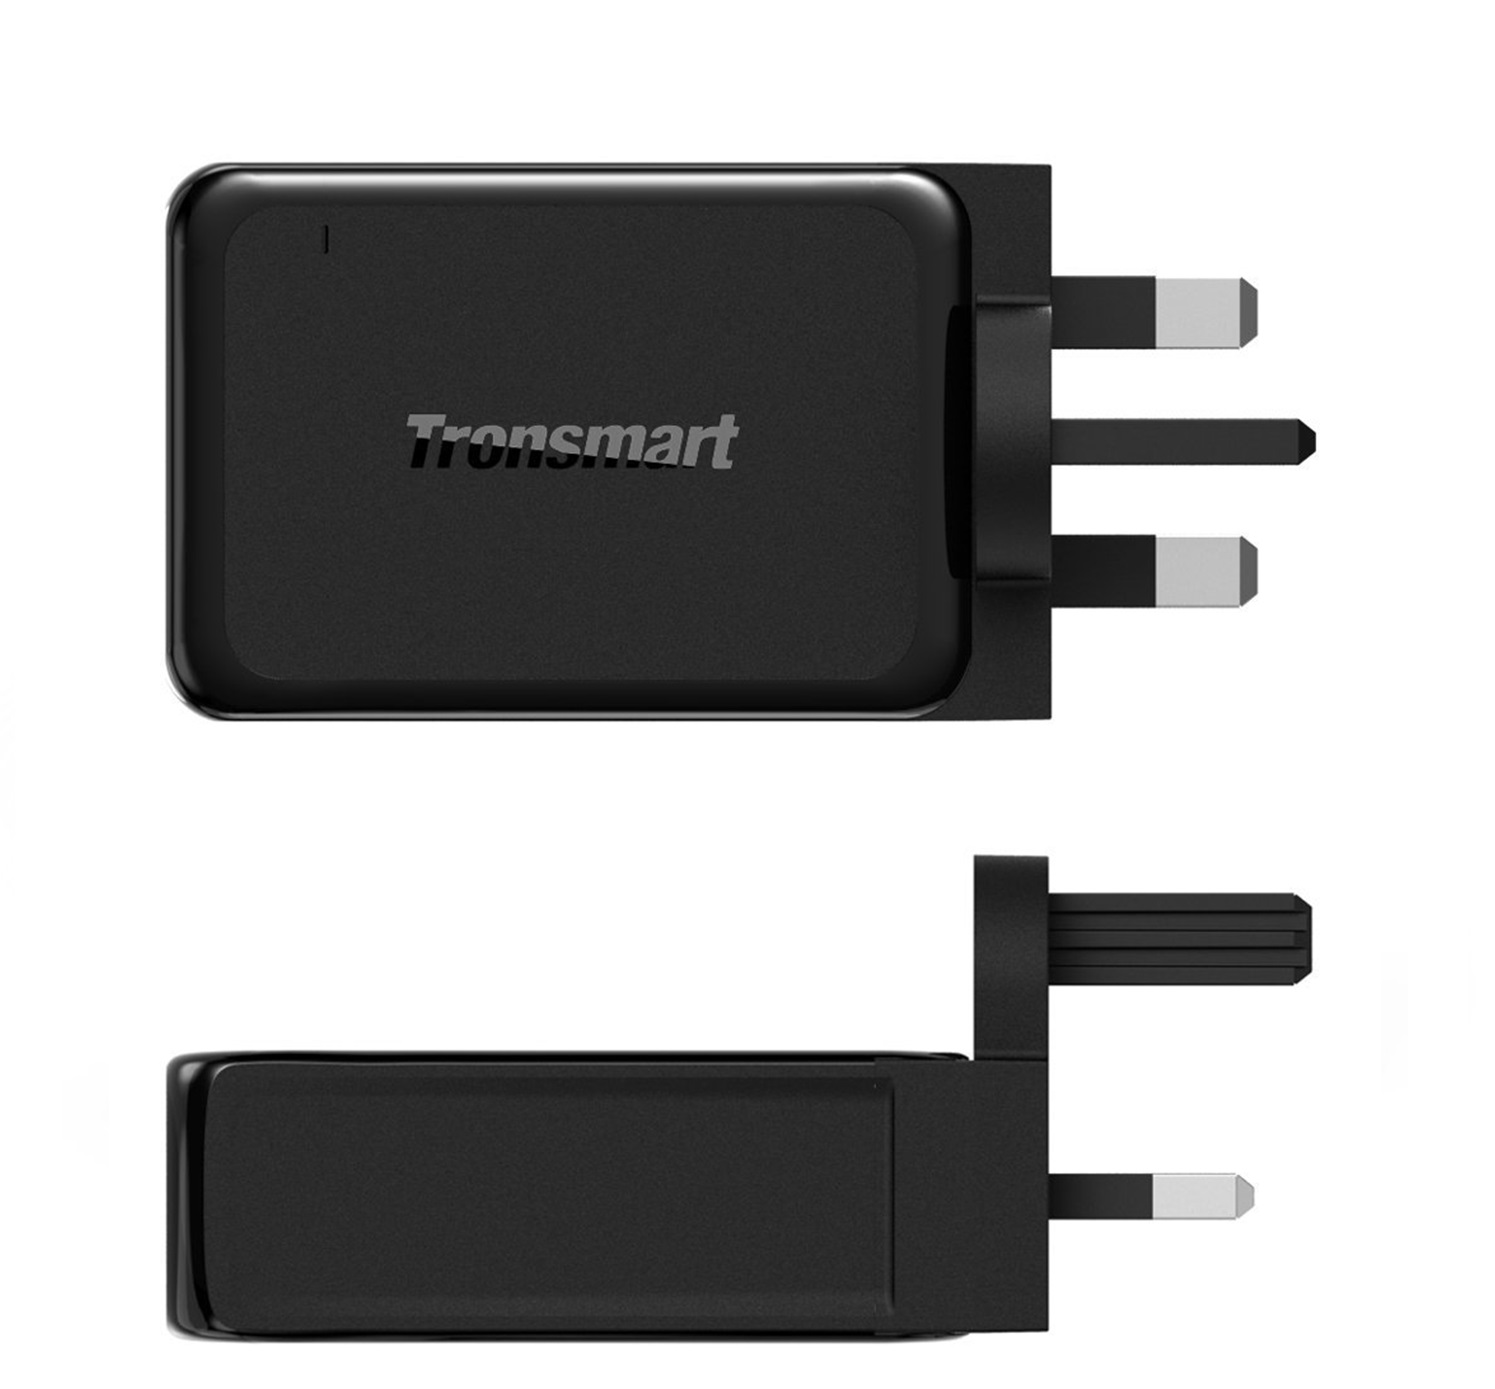 Tronsmart W3PTA 42W Quick Charge 3.0 Wall Charger (1Quick Charge 3.0 Port+2 VoltIQ Ports)_4.jpg